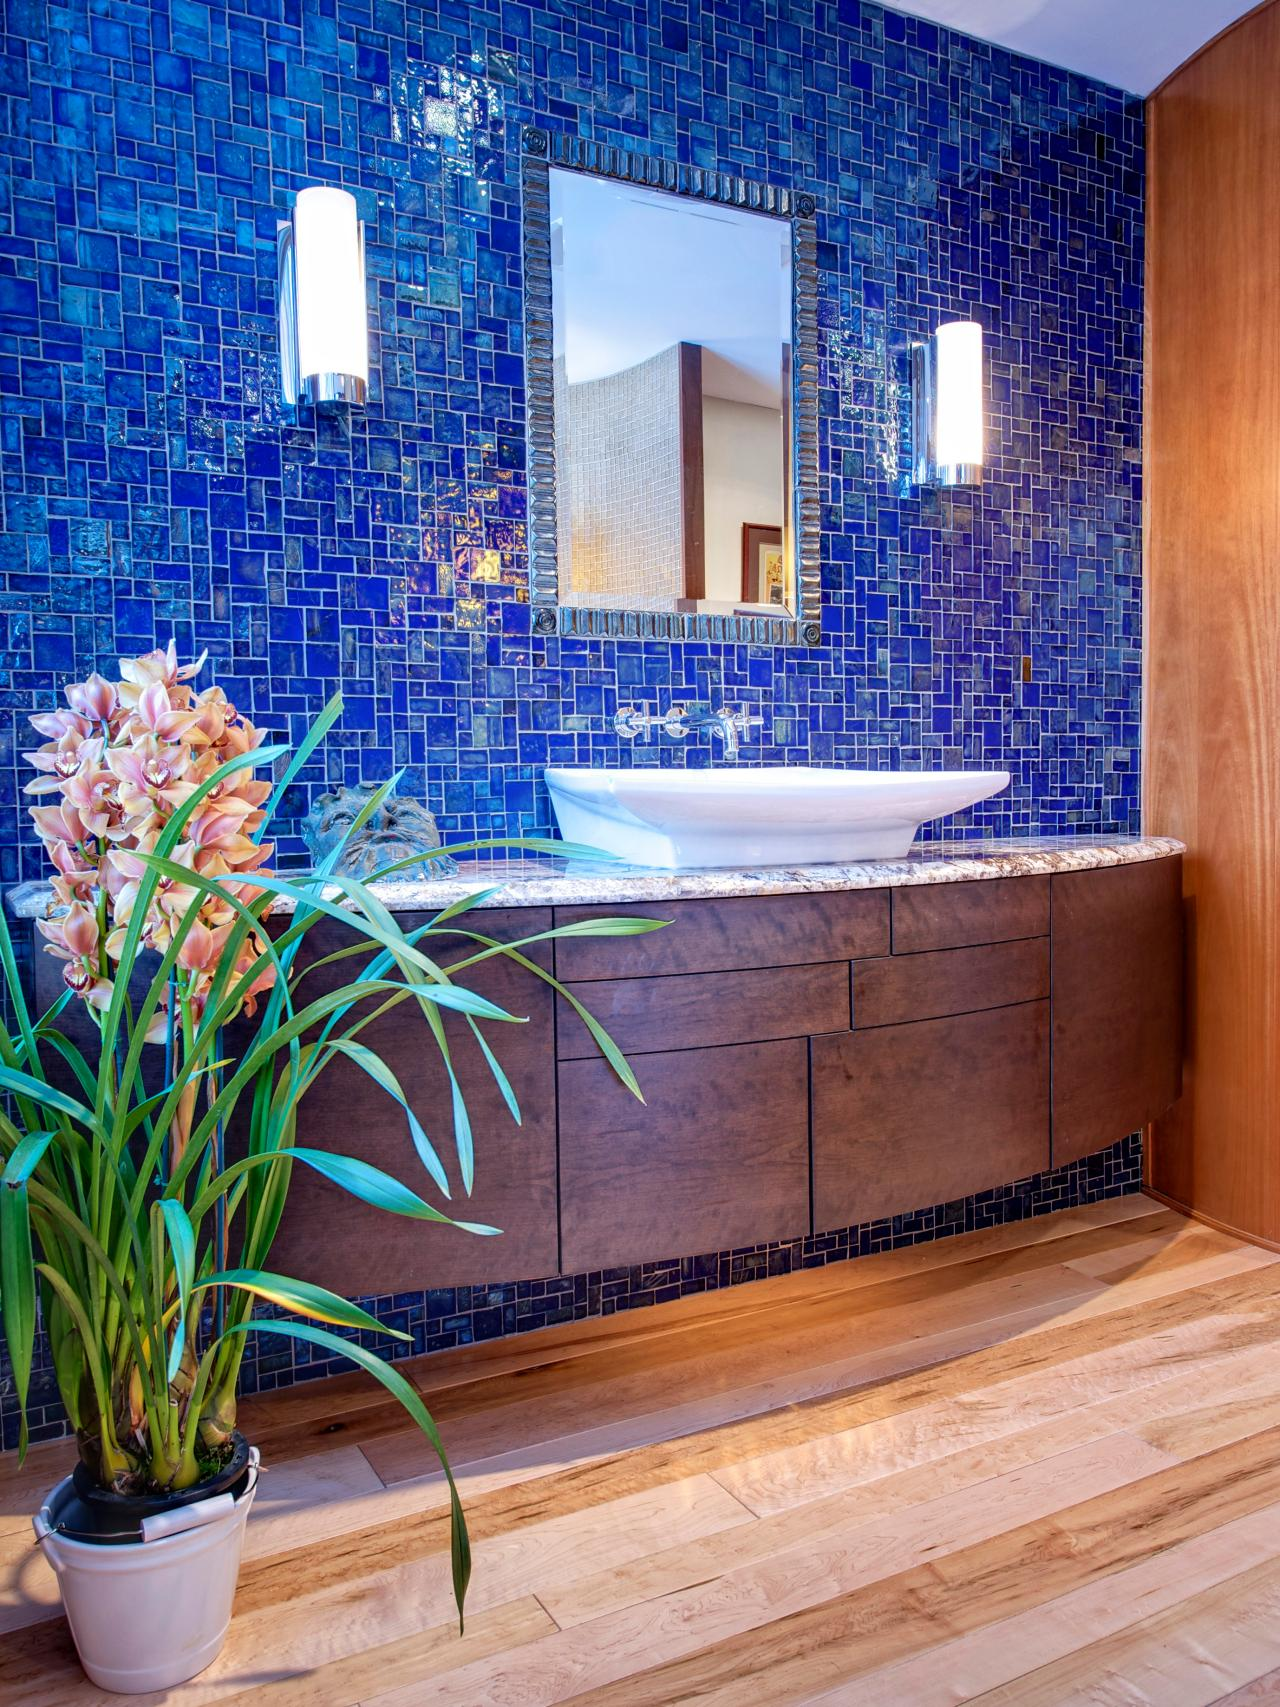 DP_David-Stimmel-Contemporary-Bathroom-Blue-Backsplash-Vanity_s3x4.jpg.rend.hgtvcom.1280.1707